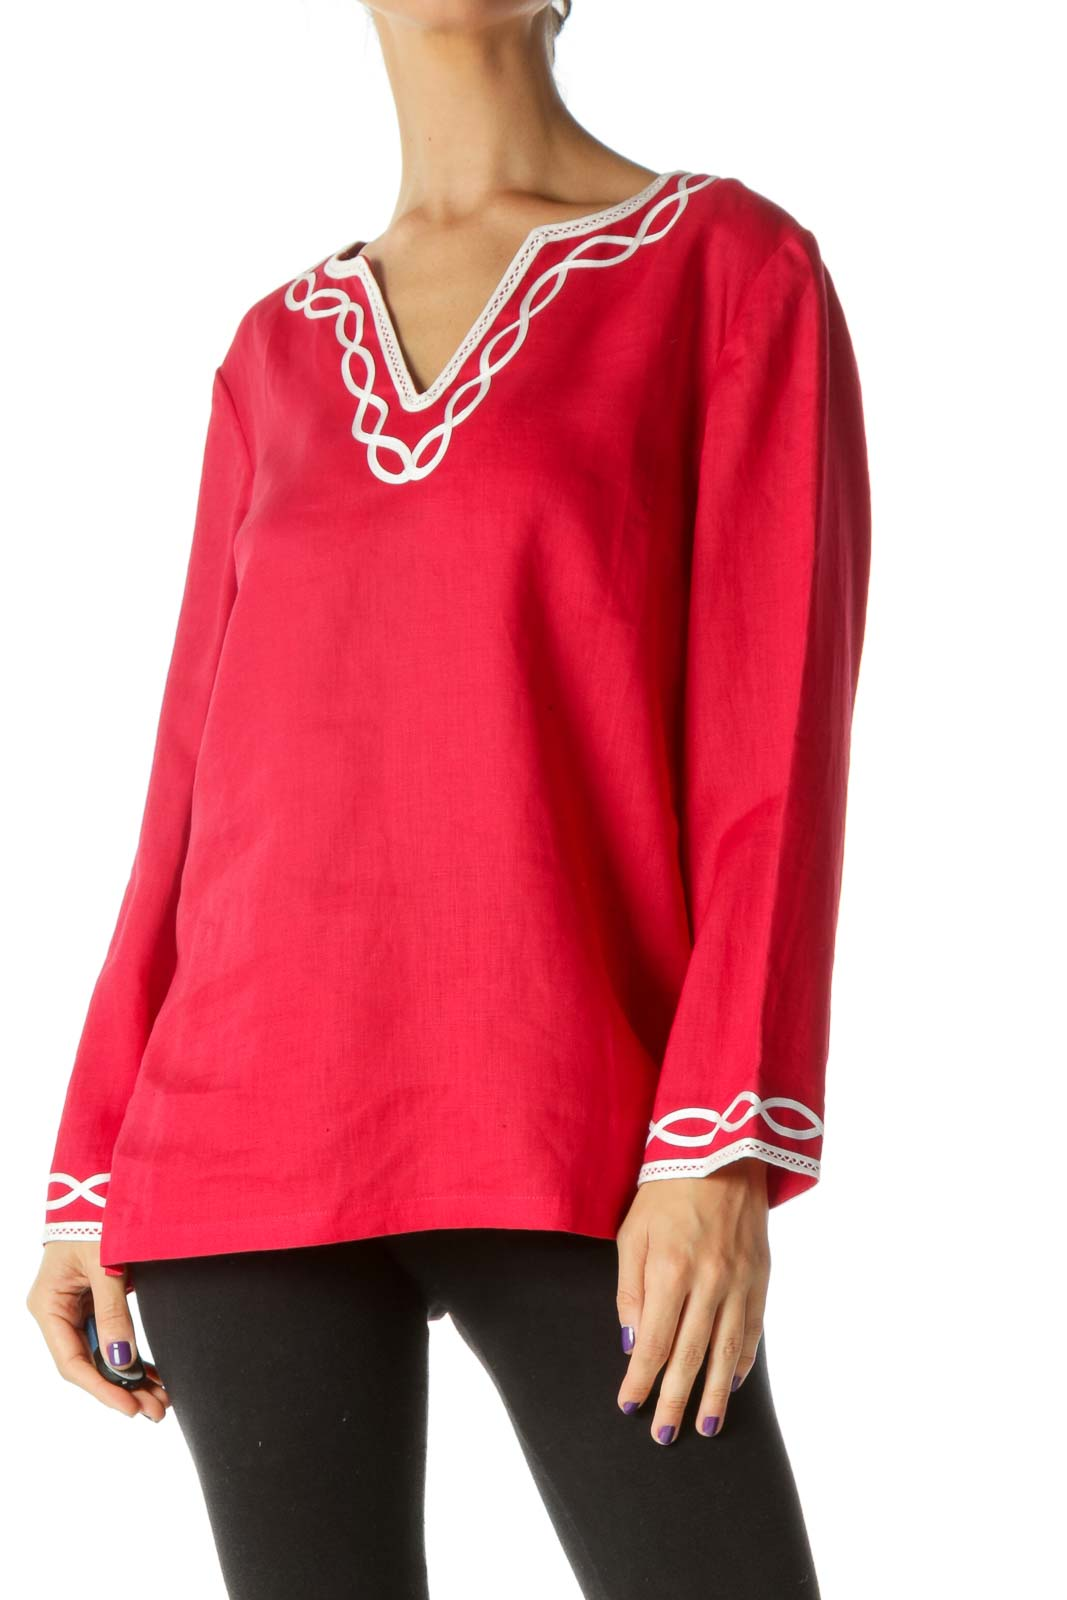 Red White Trim Detail 100% Linen V-Neck Long Sleeve Tunic Top